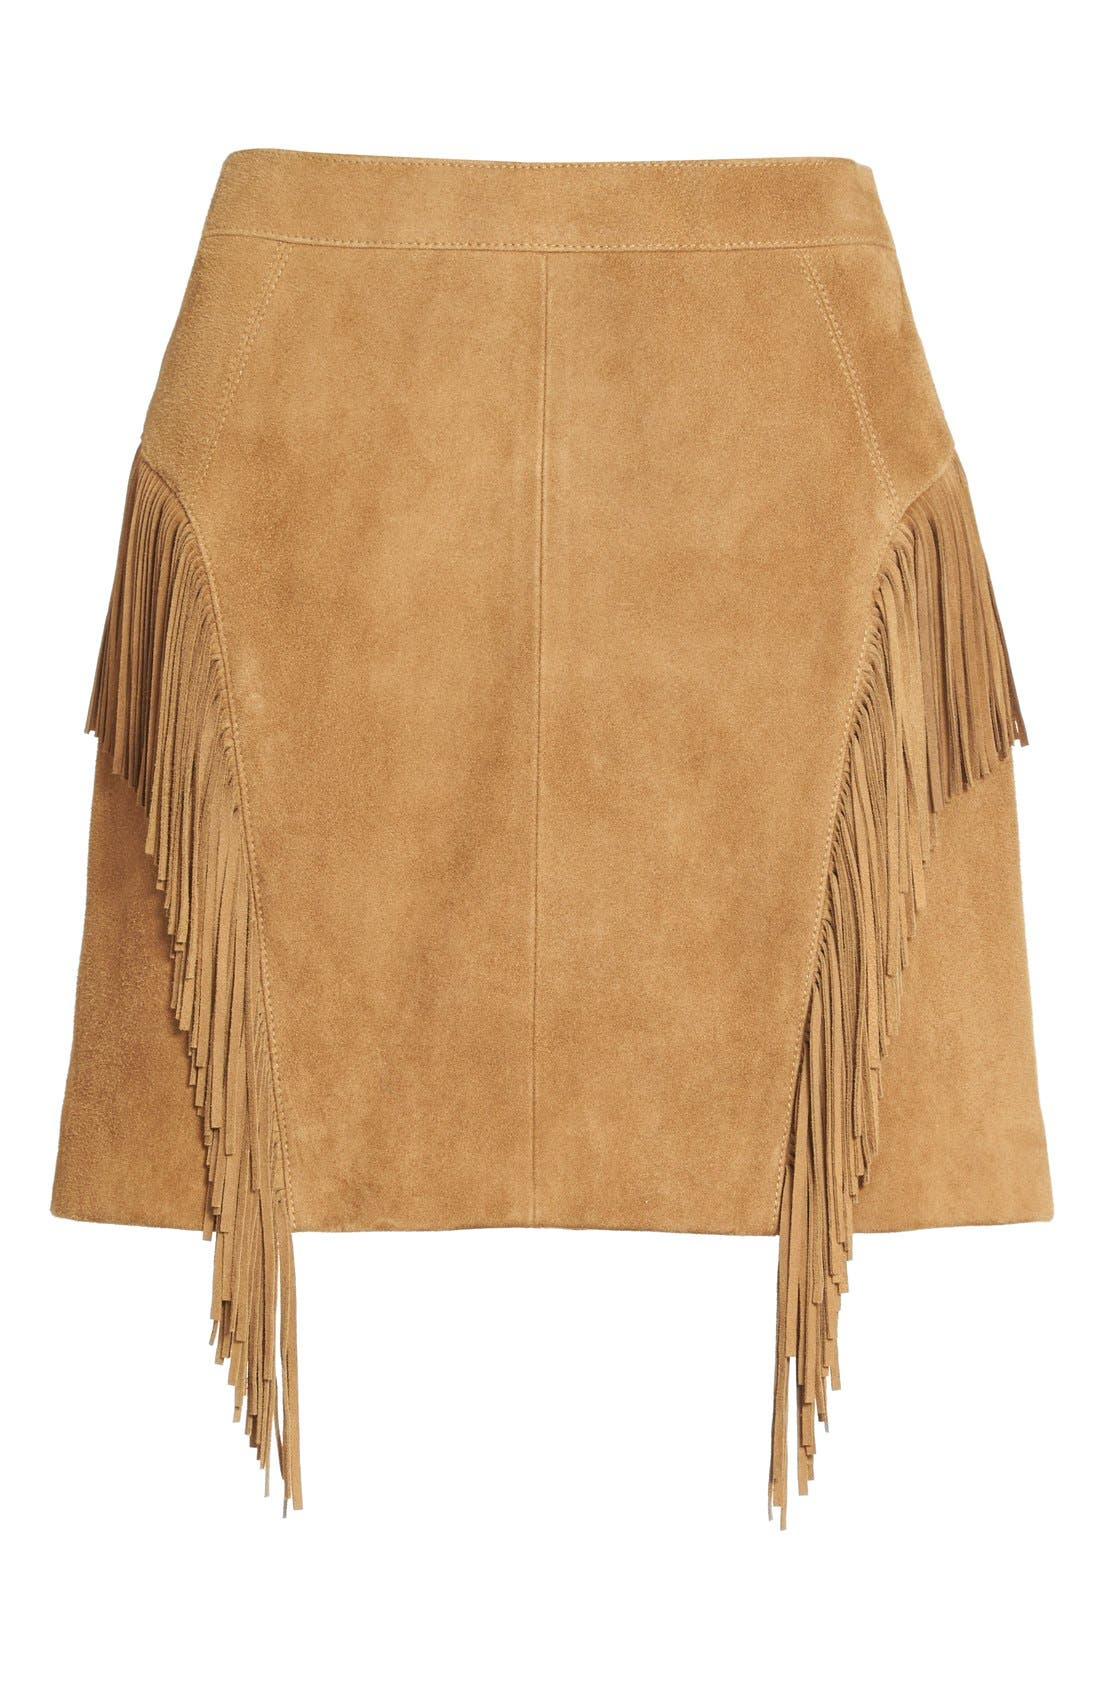 Suede Fringe Mini Skirt,                             Alternate thumbnail 2, color,                             244